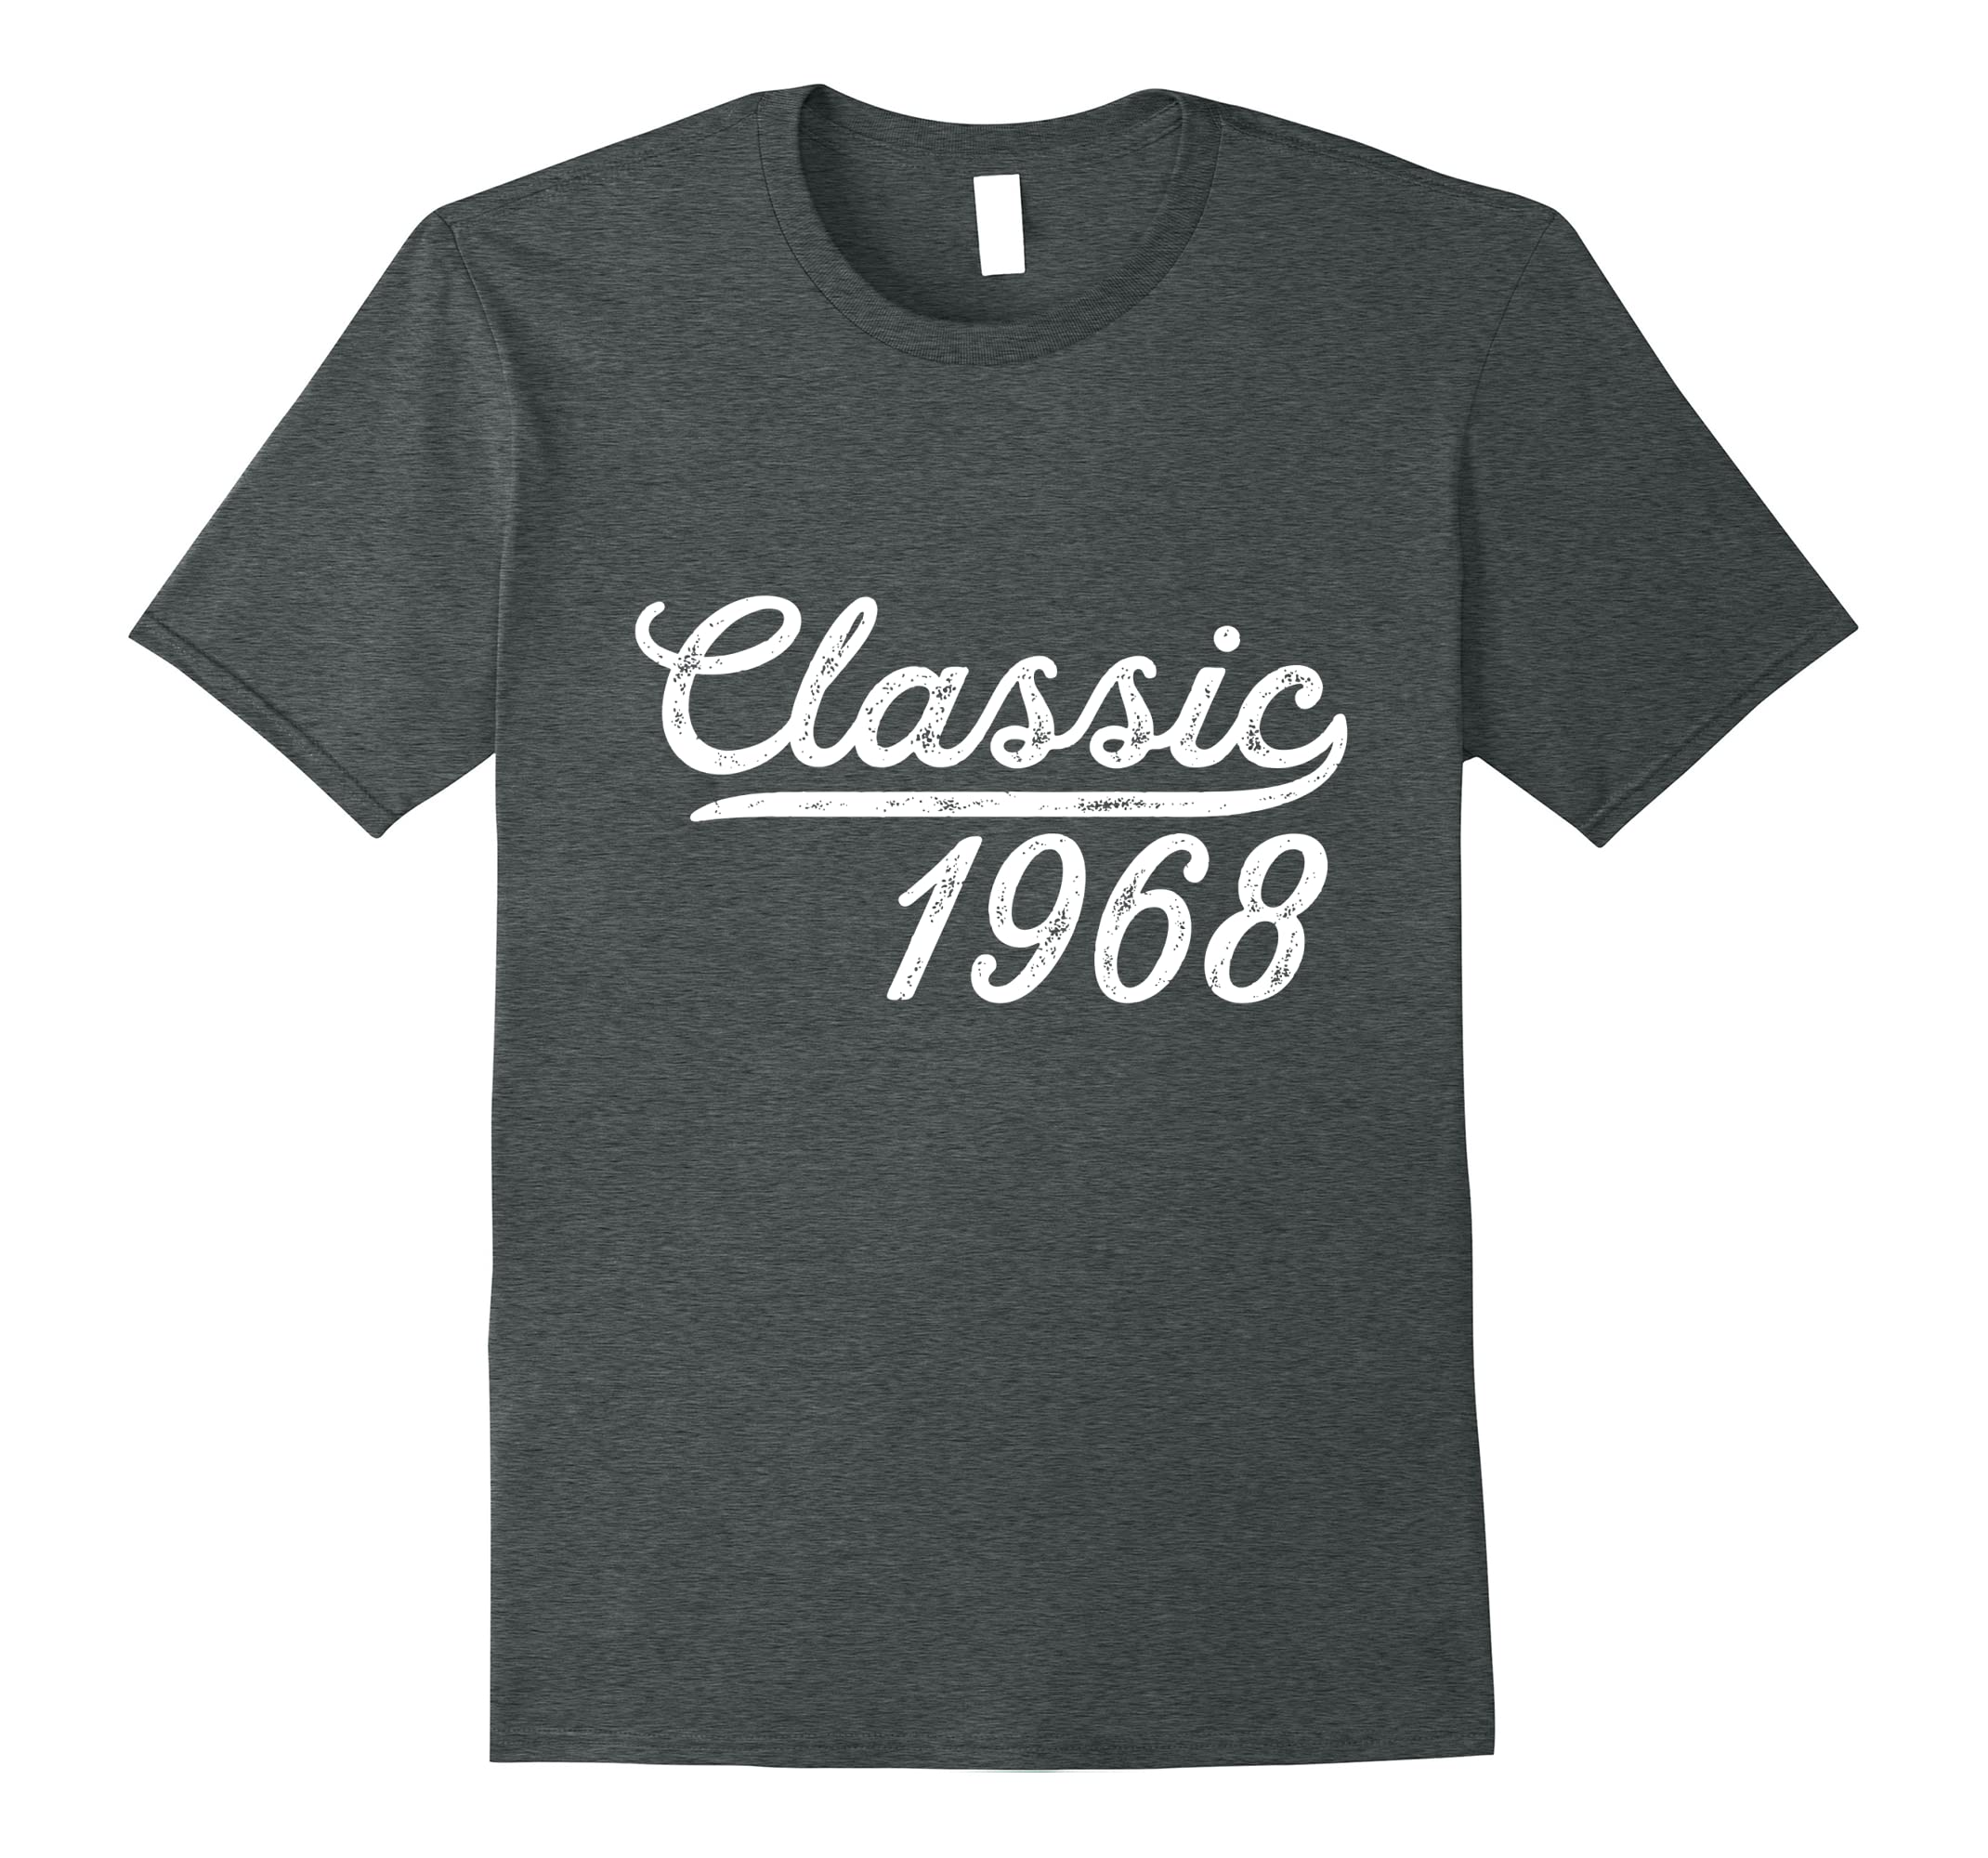 Classic 1968 Shirt For Him Her 50th Birthday Gift Happy Idea RT